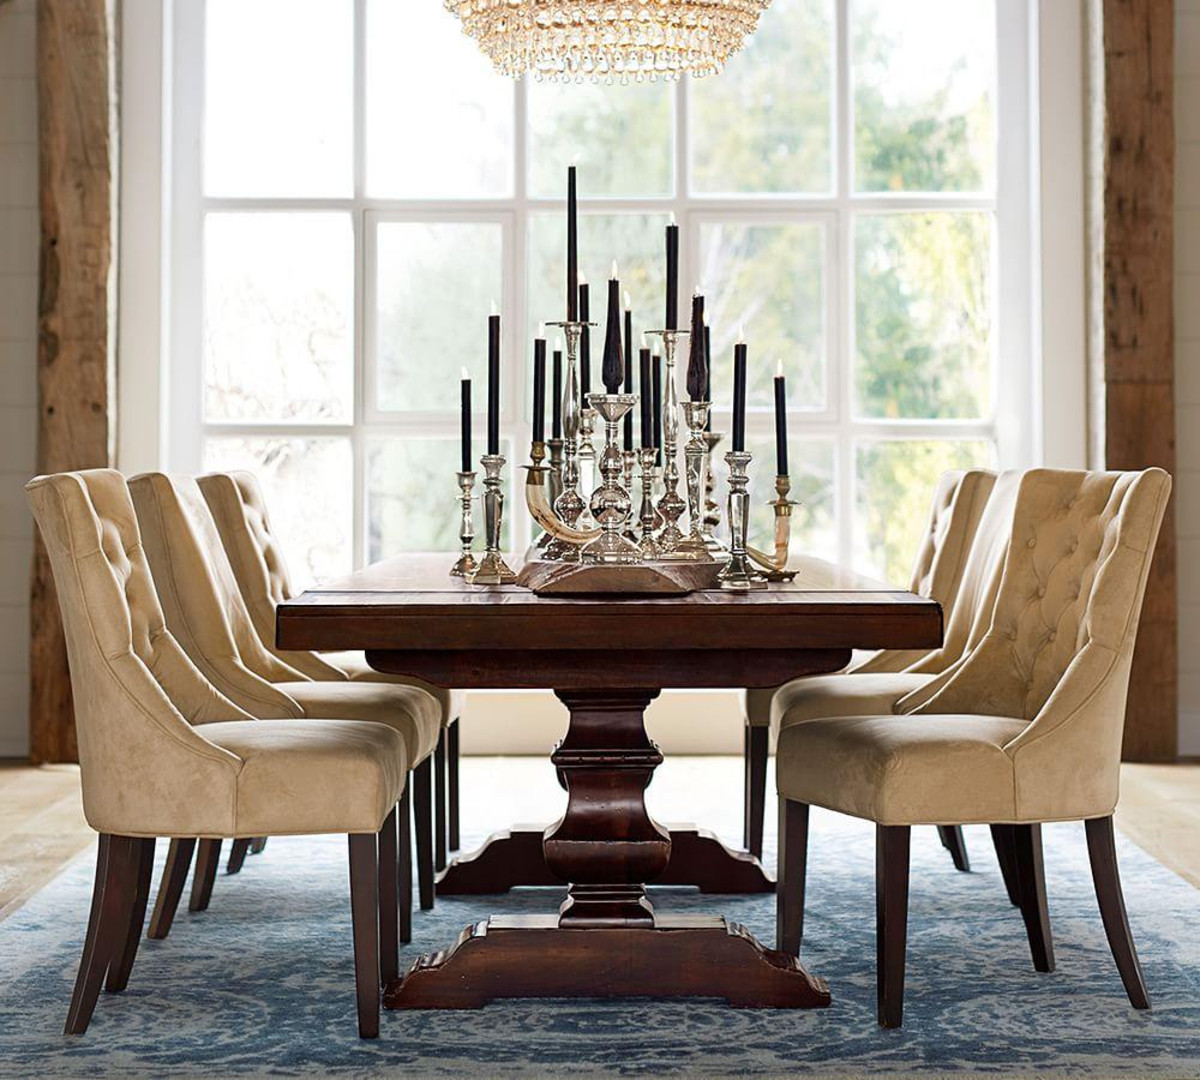 Top 20 Pottery Barn Dining Table - Best Collections Ever ...